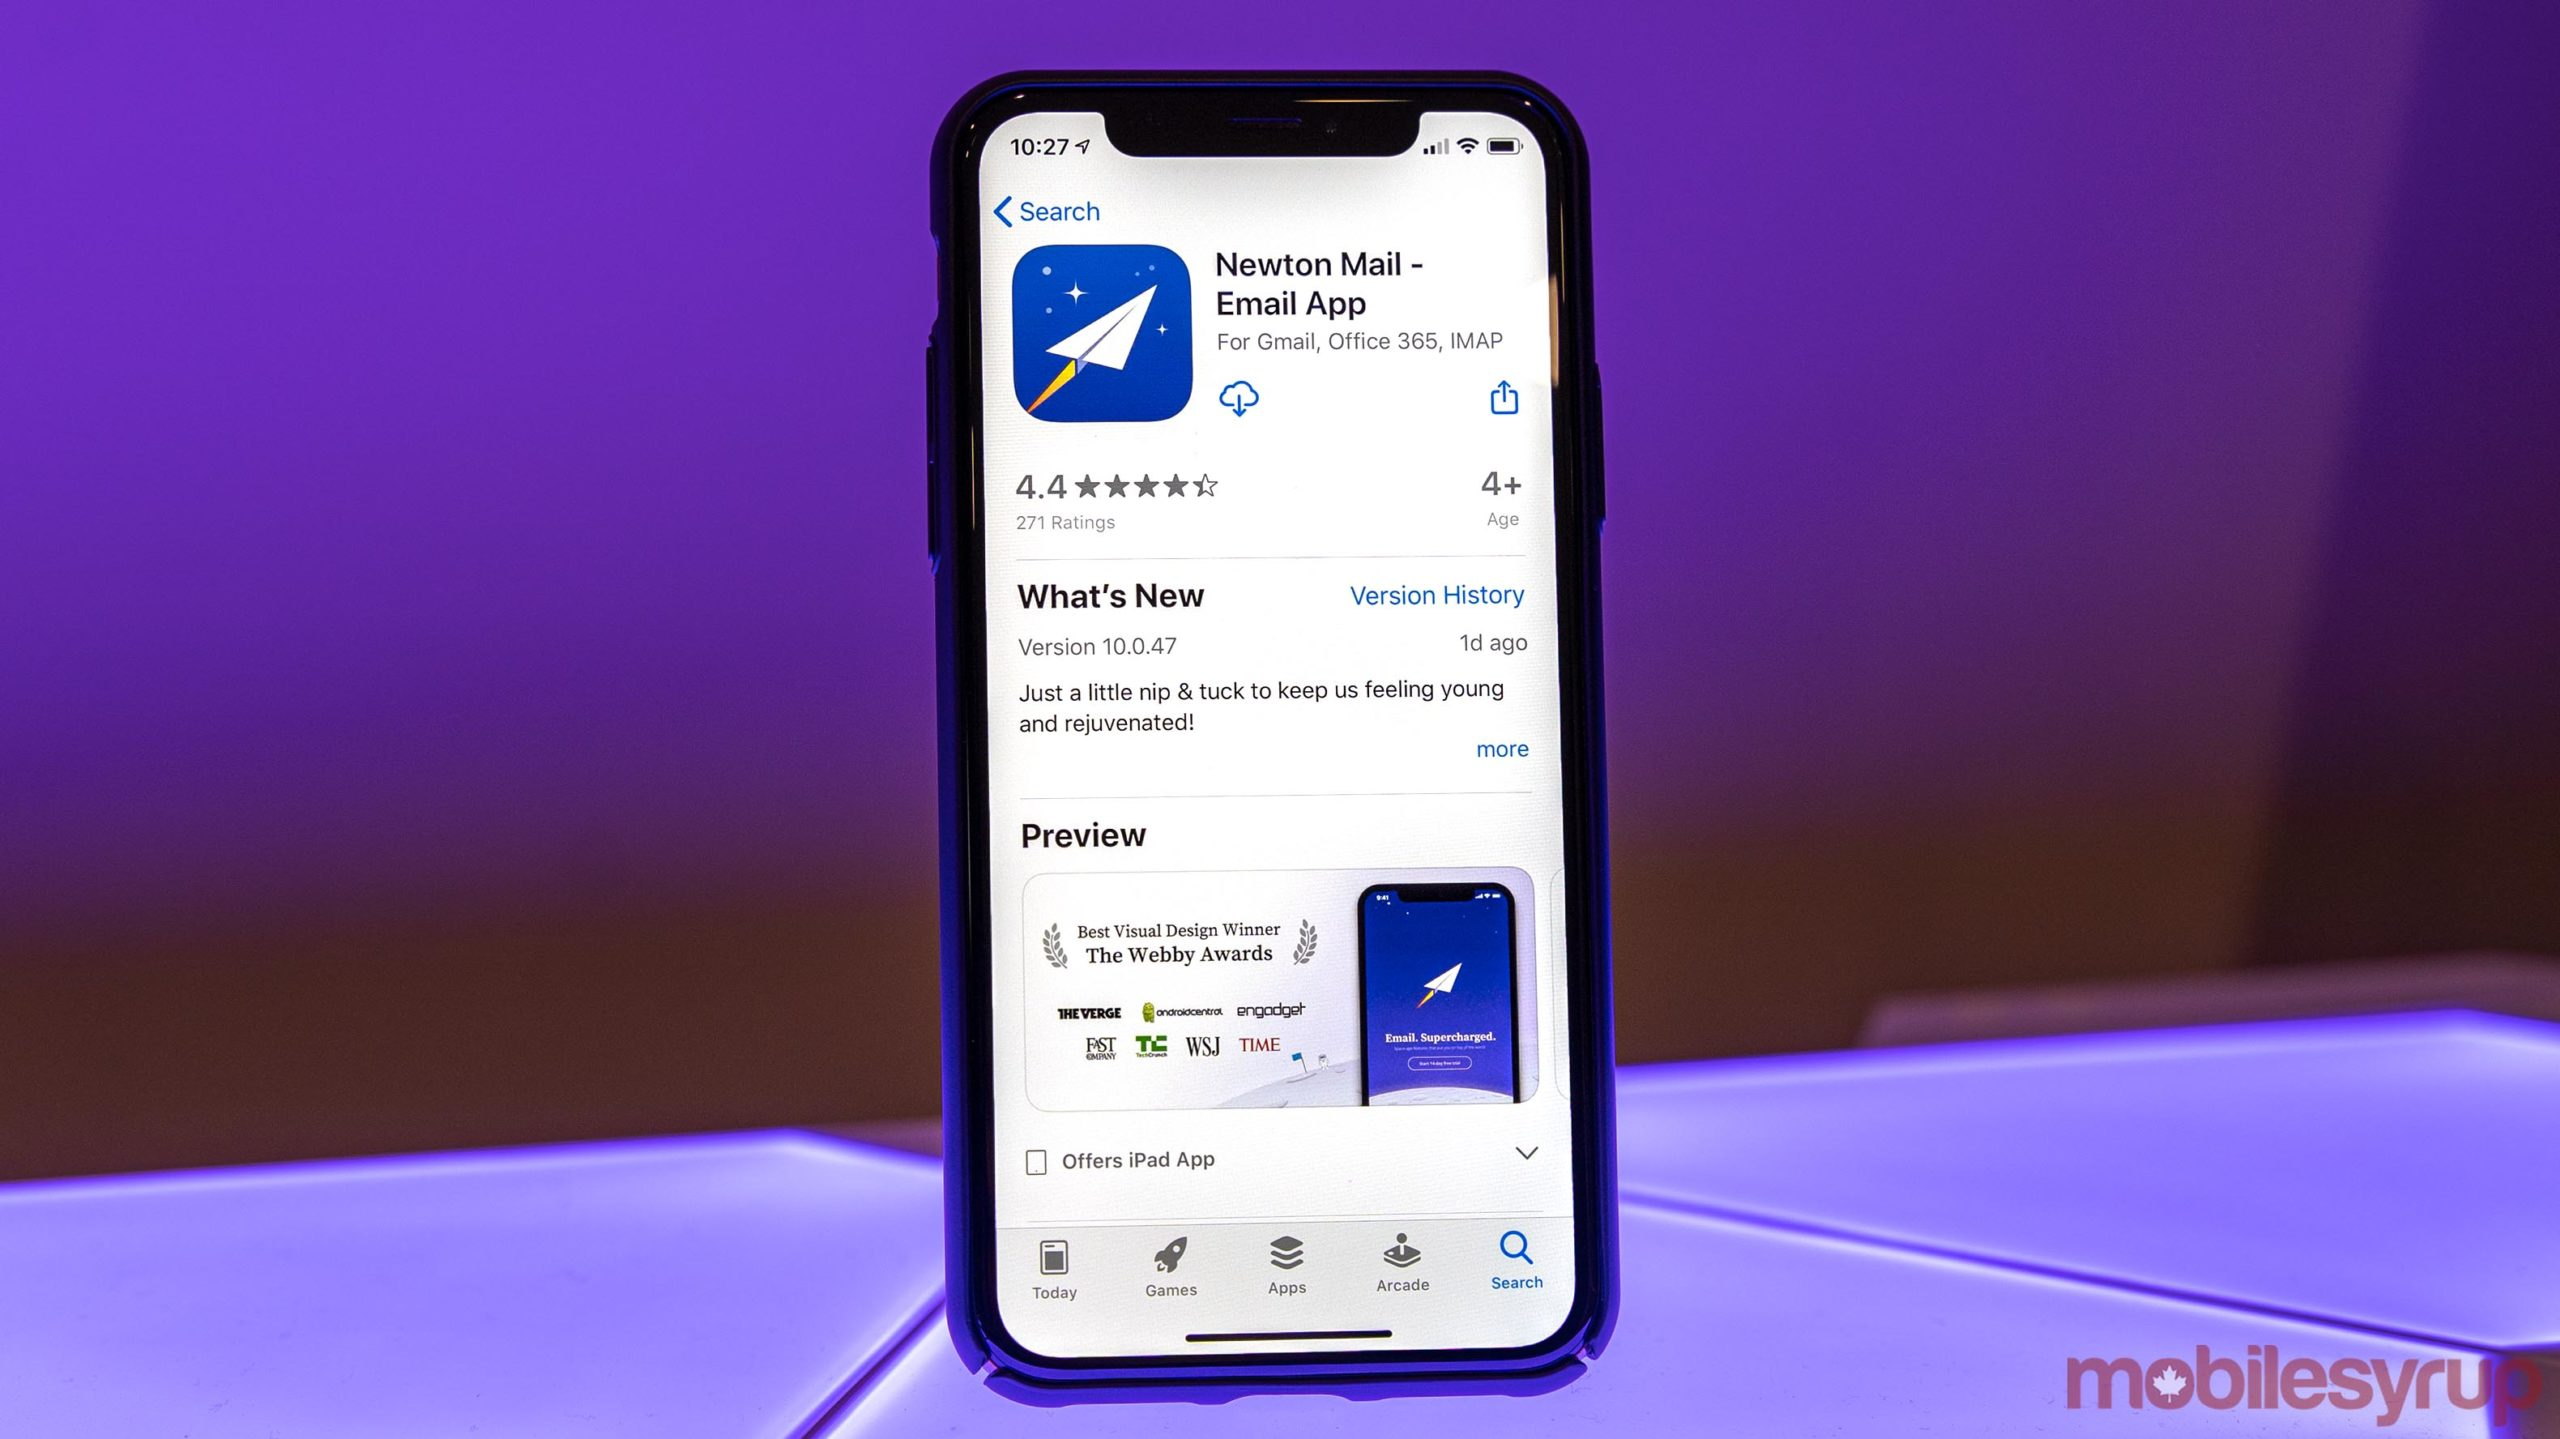 Newton Mail email app